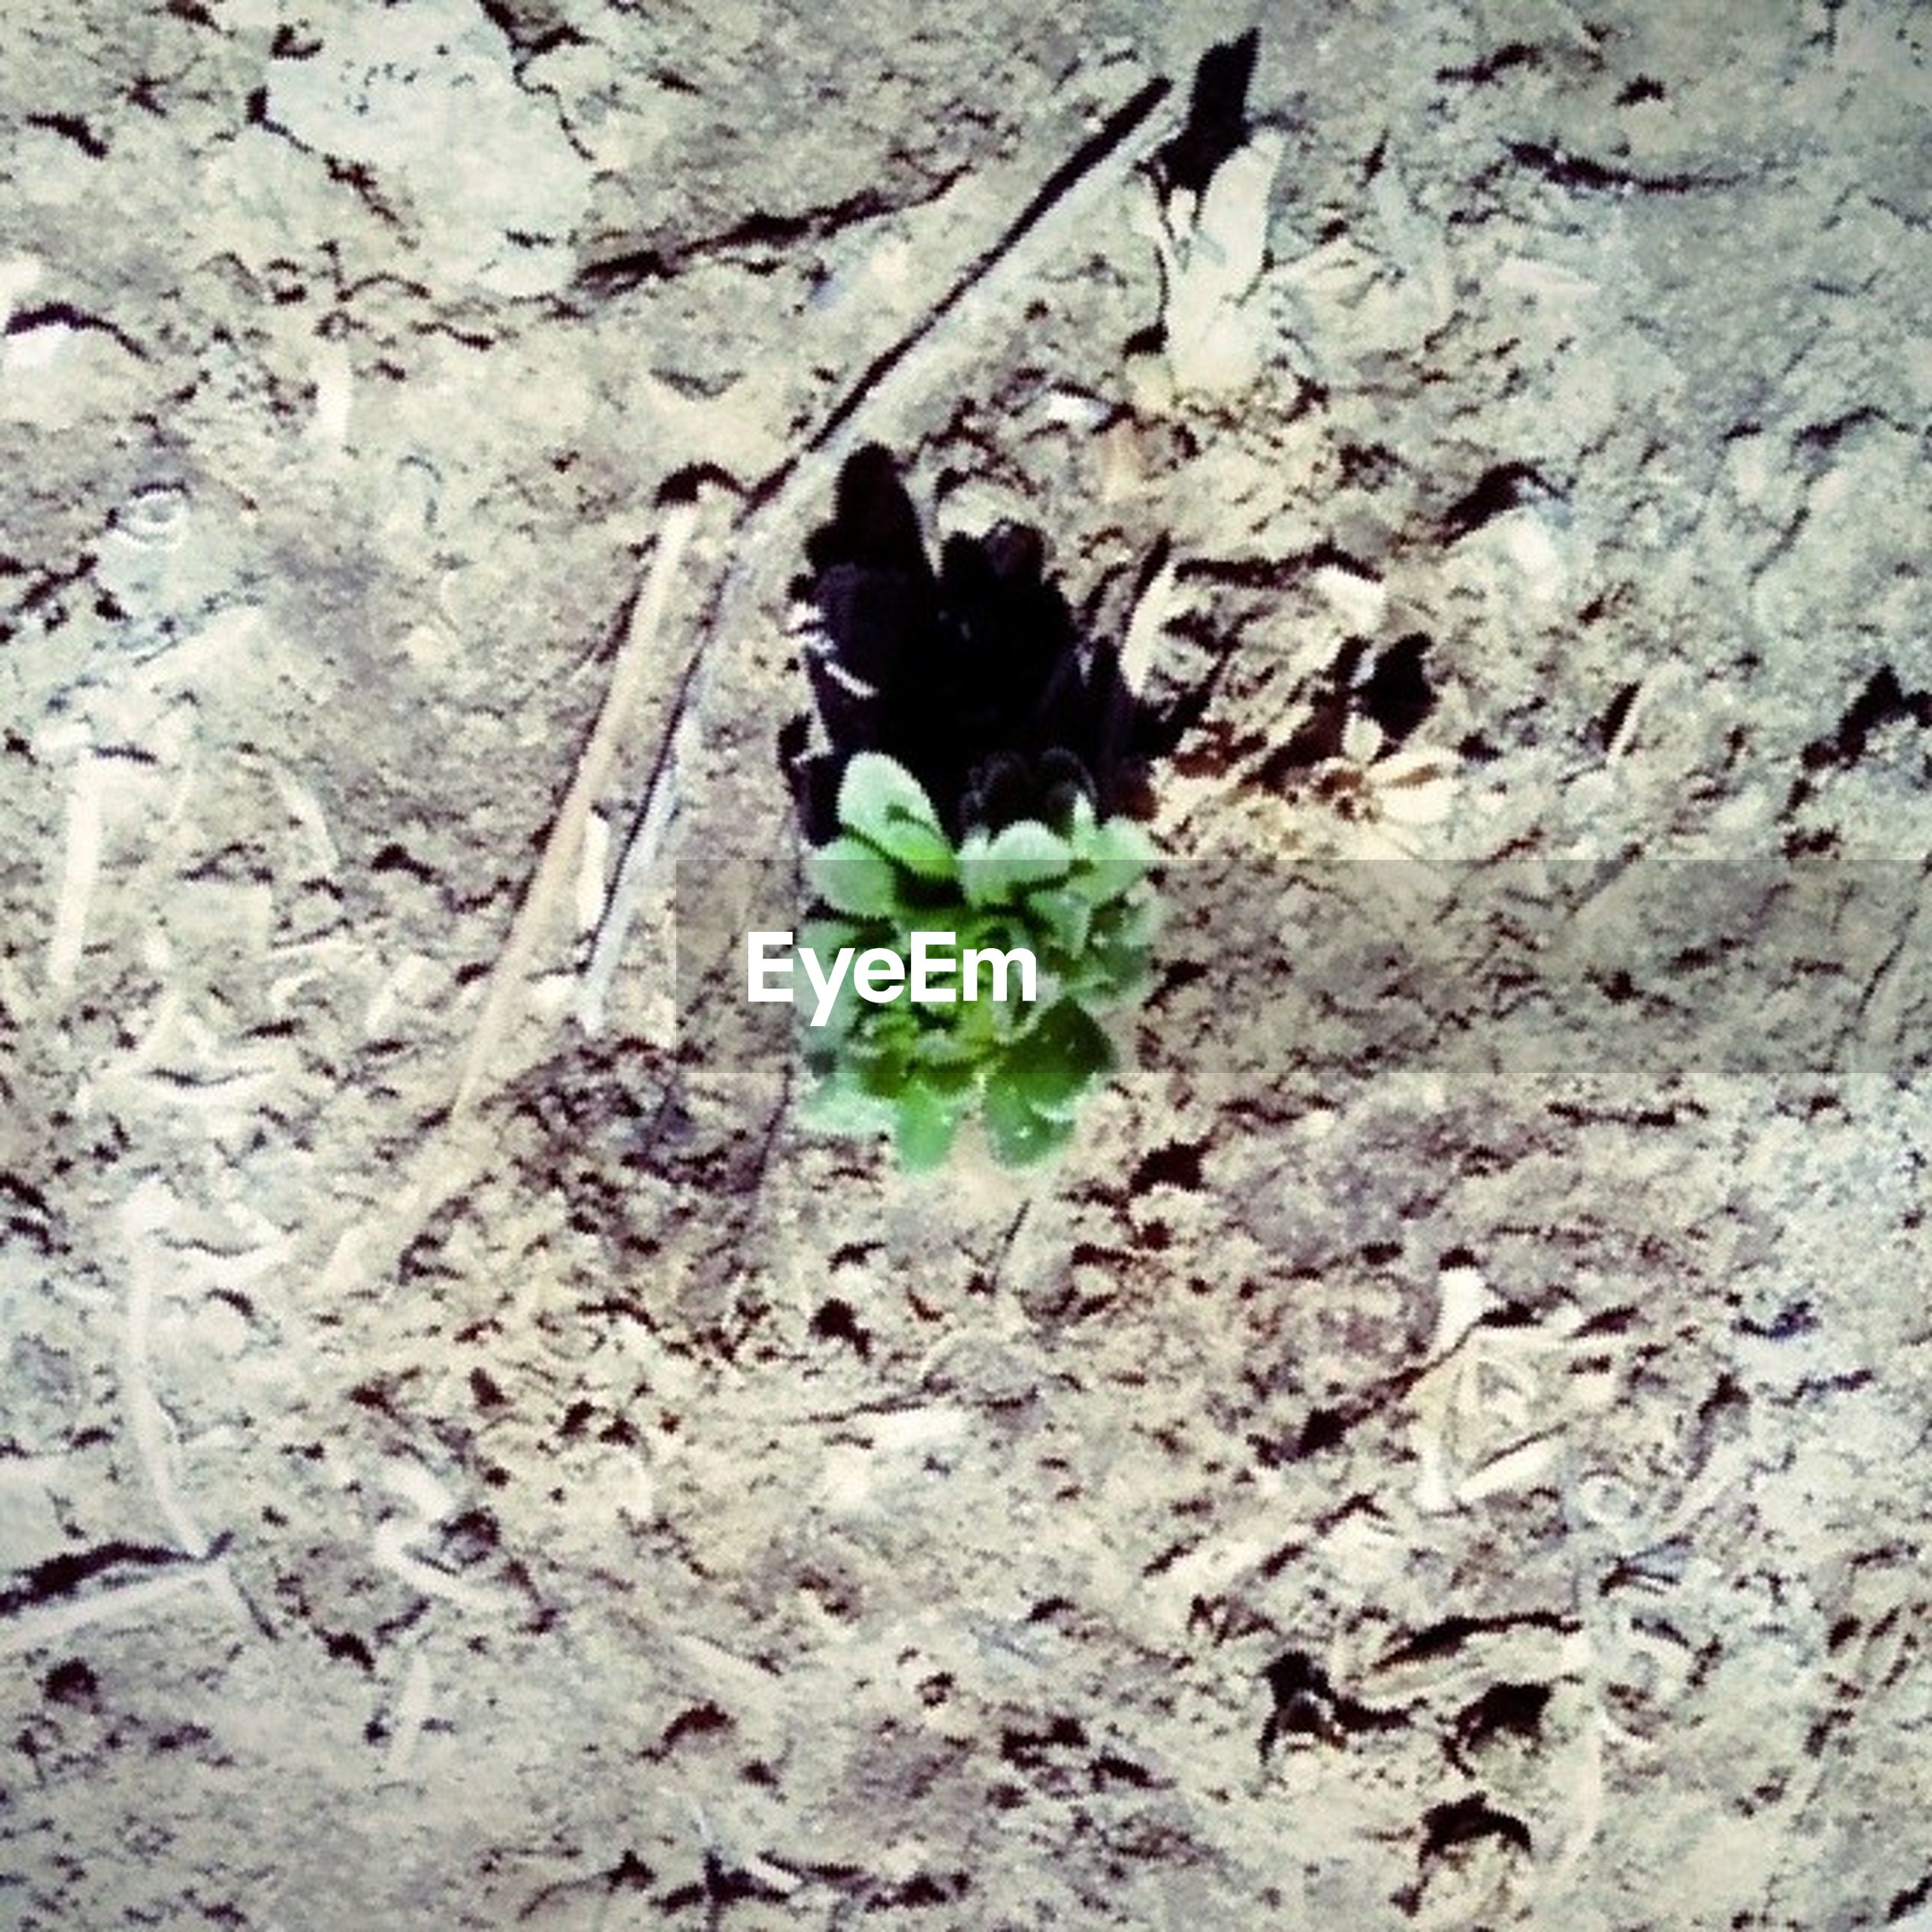 leaf, growth, plant, high angle view, nature, growing, wall - building feature, green color, close-up, day, outdoors, no people, stem, sunlight, freshness, flower, fragility, ground, dirt, textured